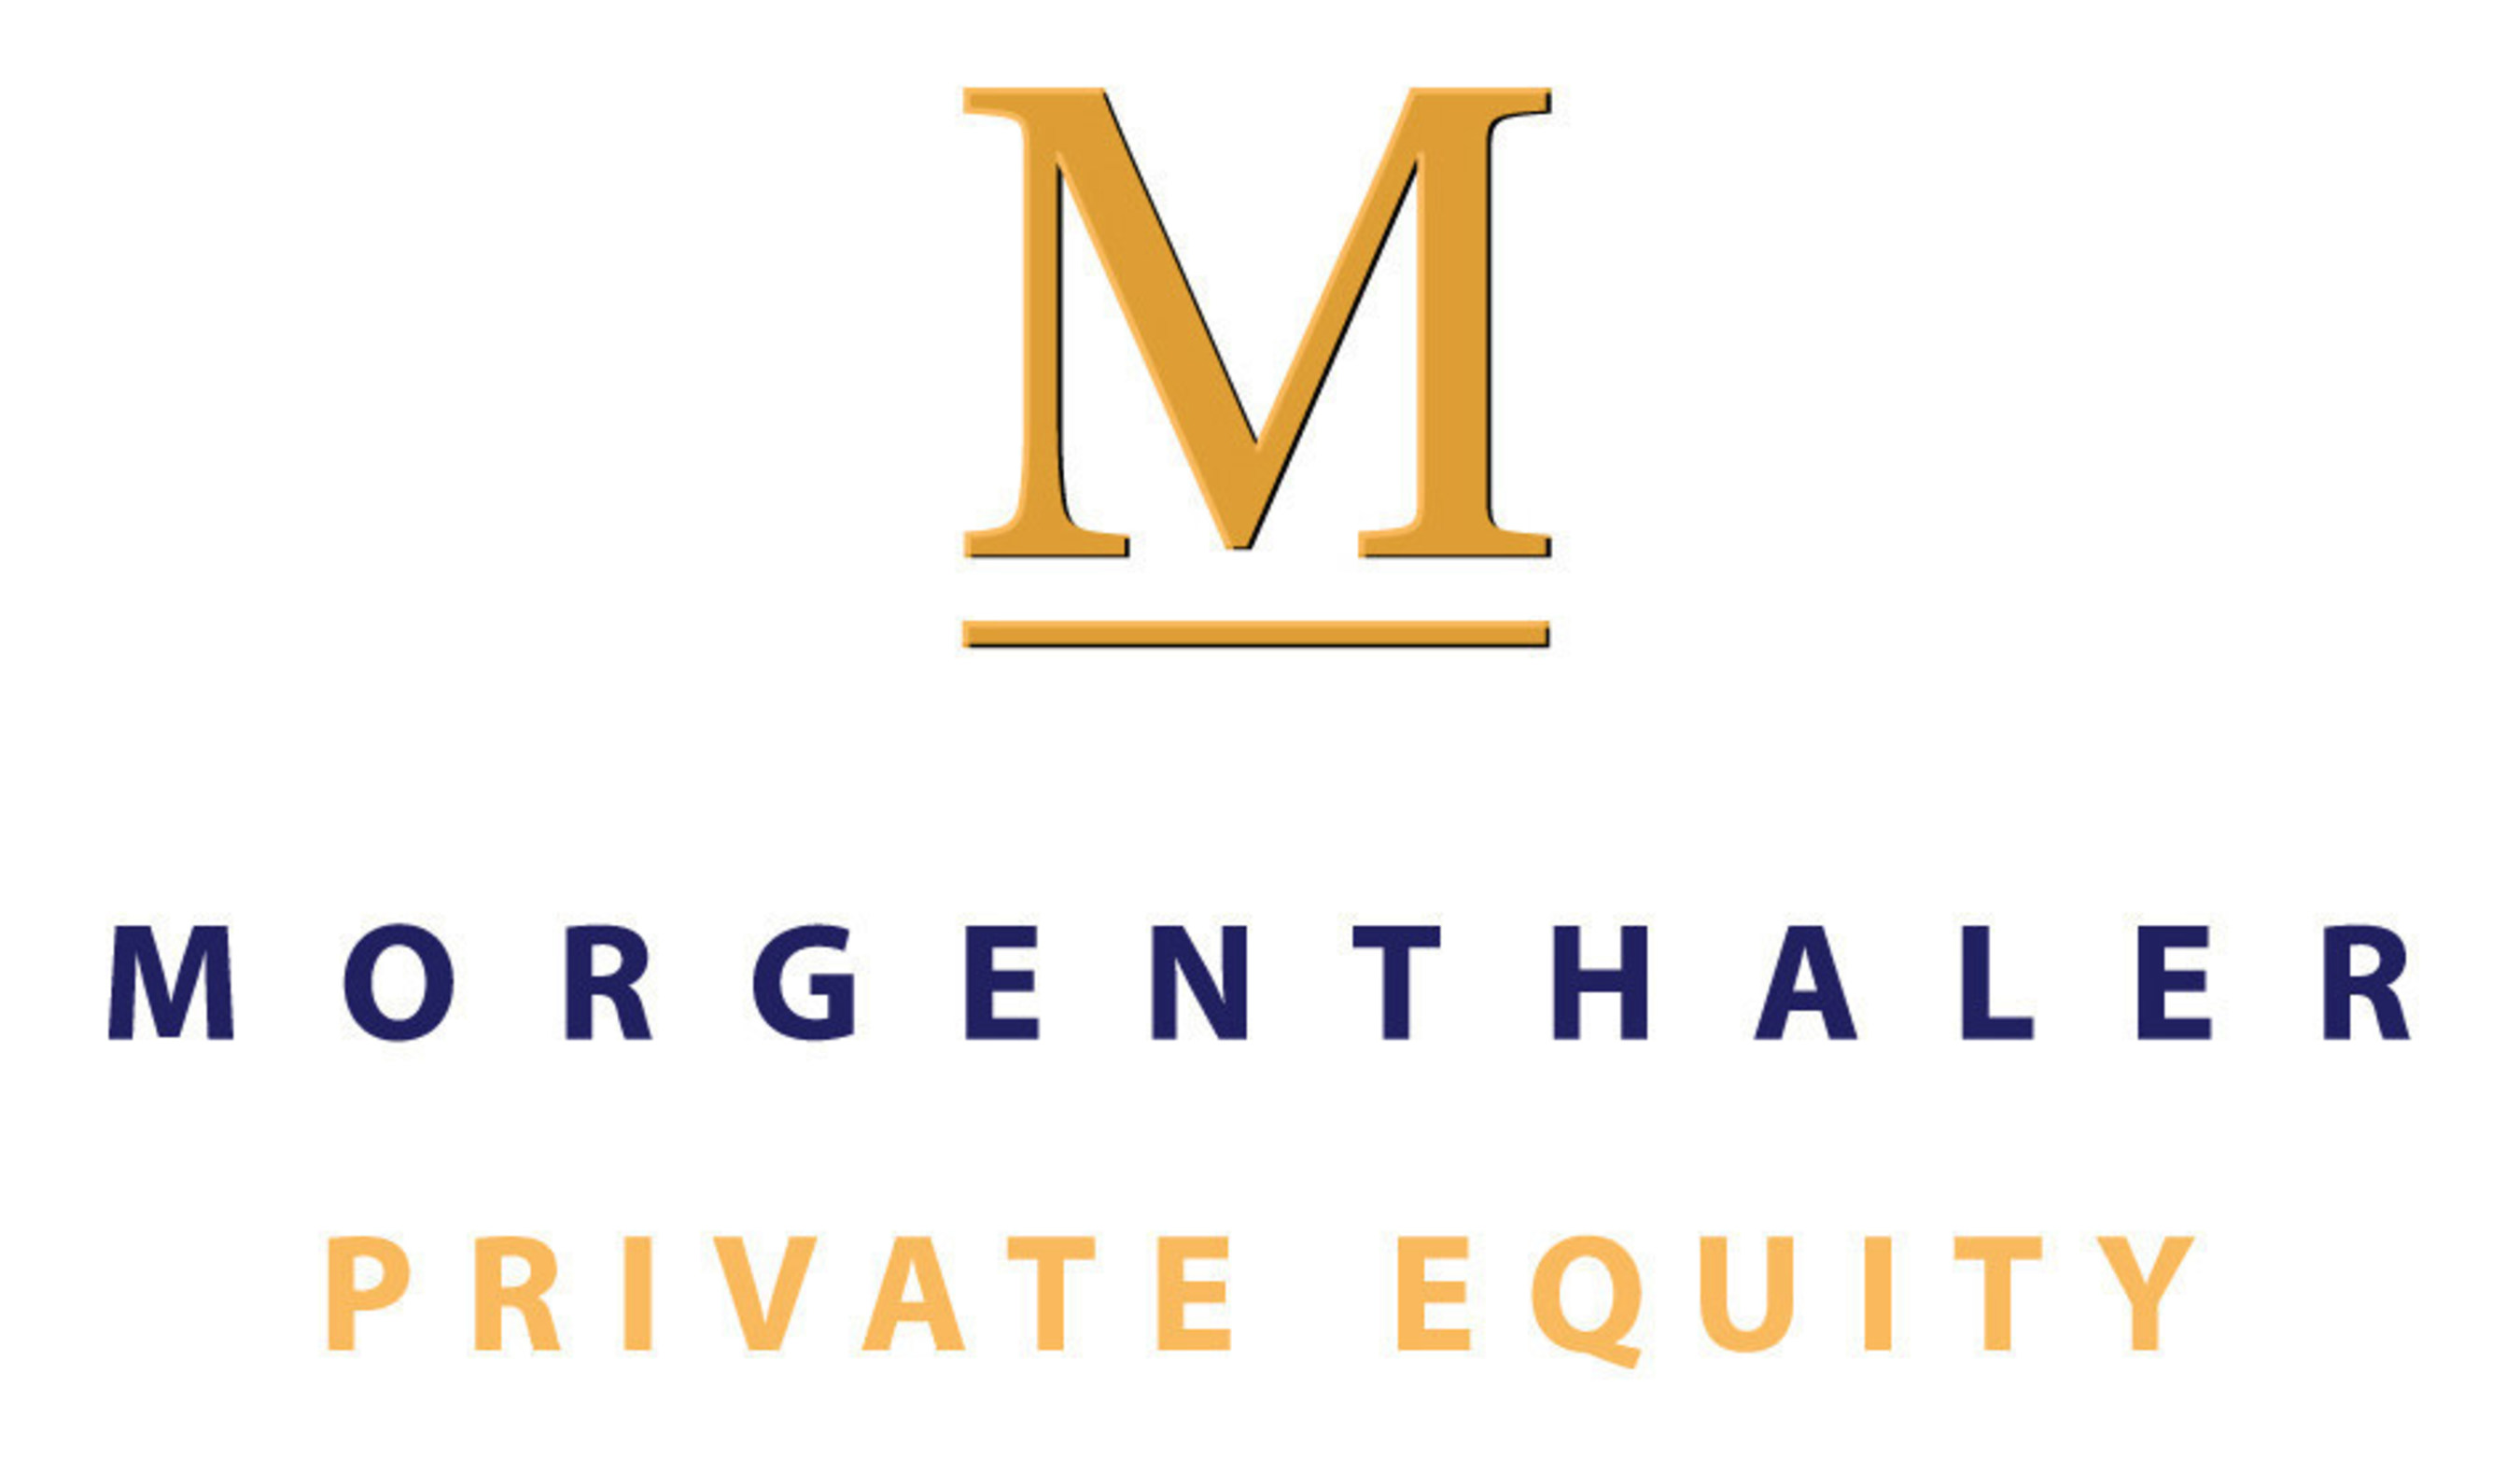 Morgenthaler Private Equity